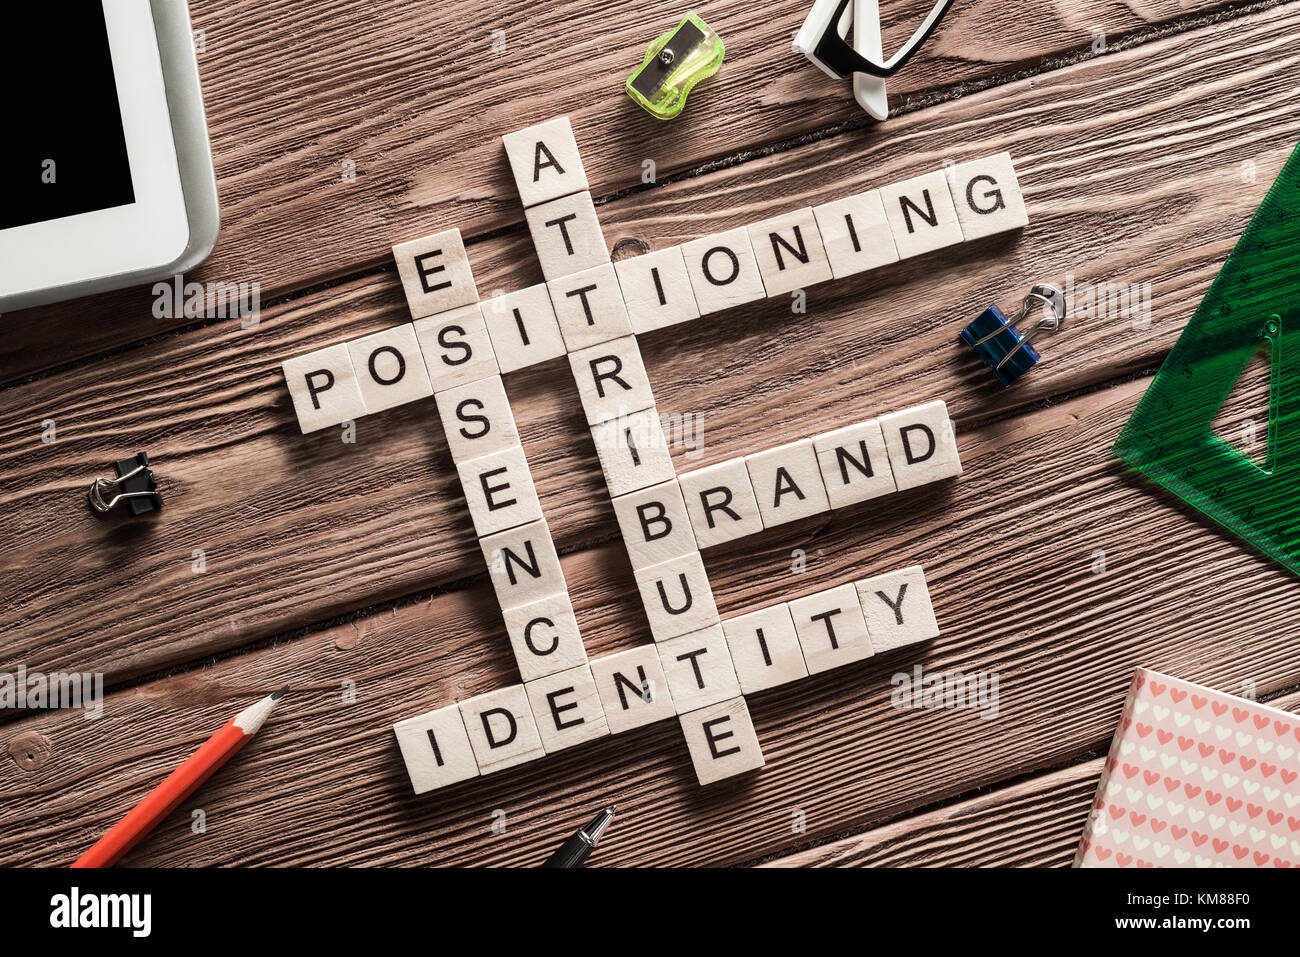 Conceptual business keywords on table with elements of game making crossword - Stock Image